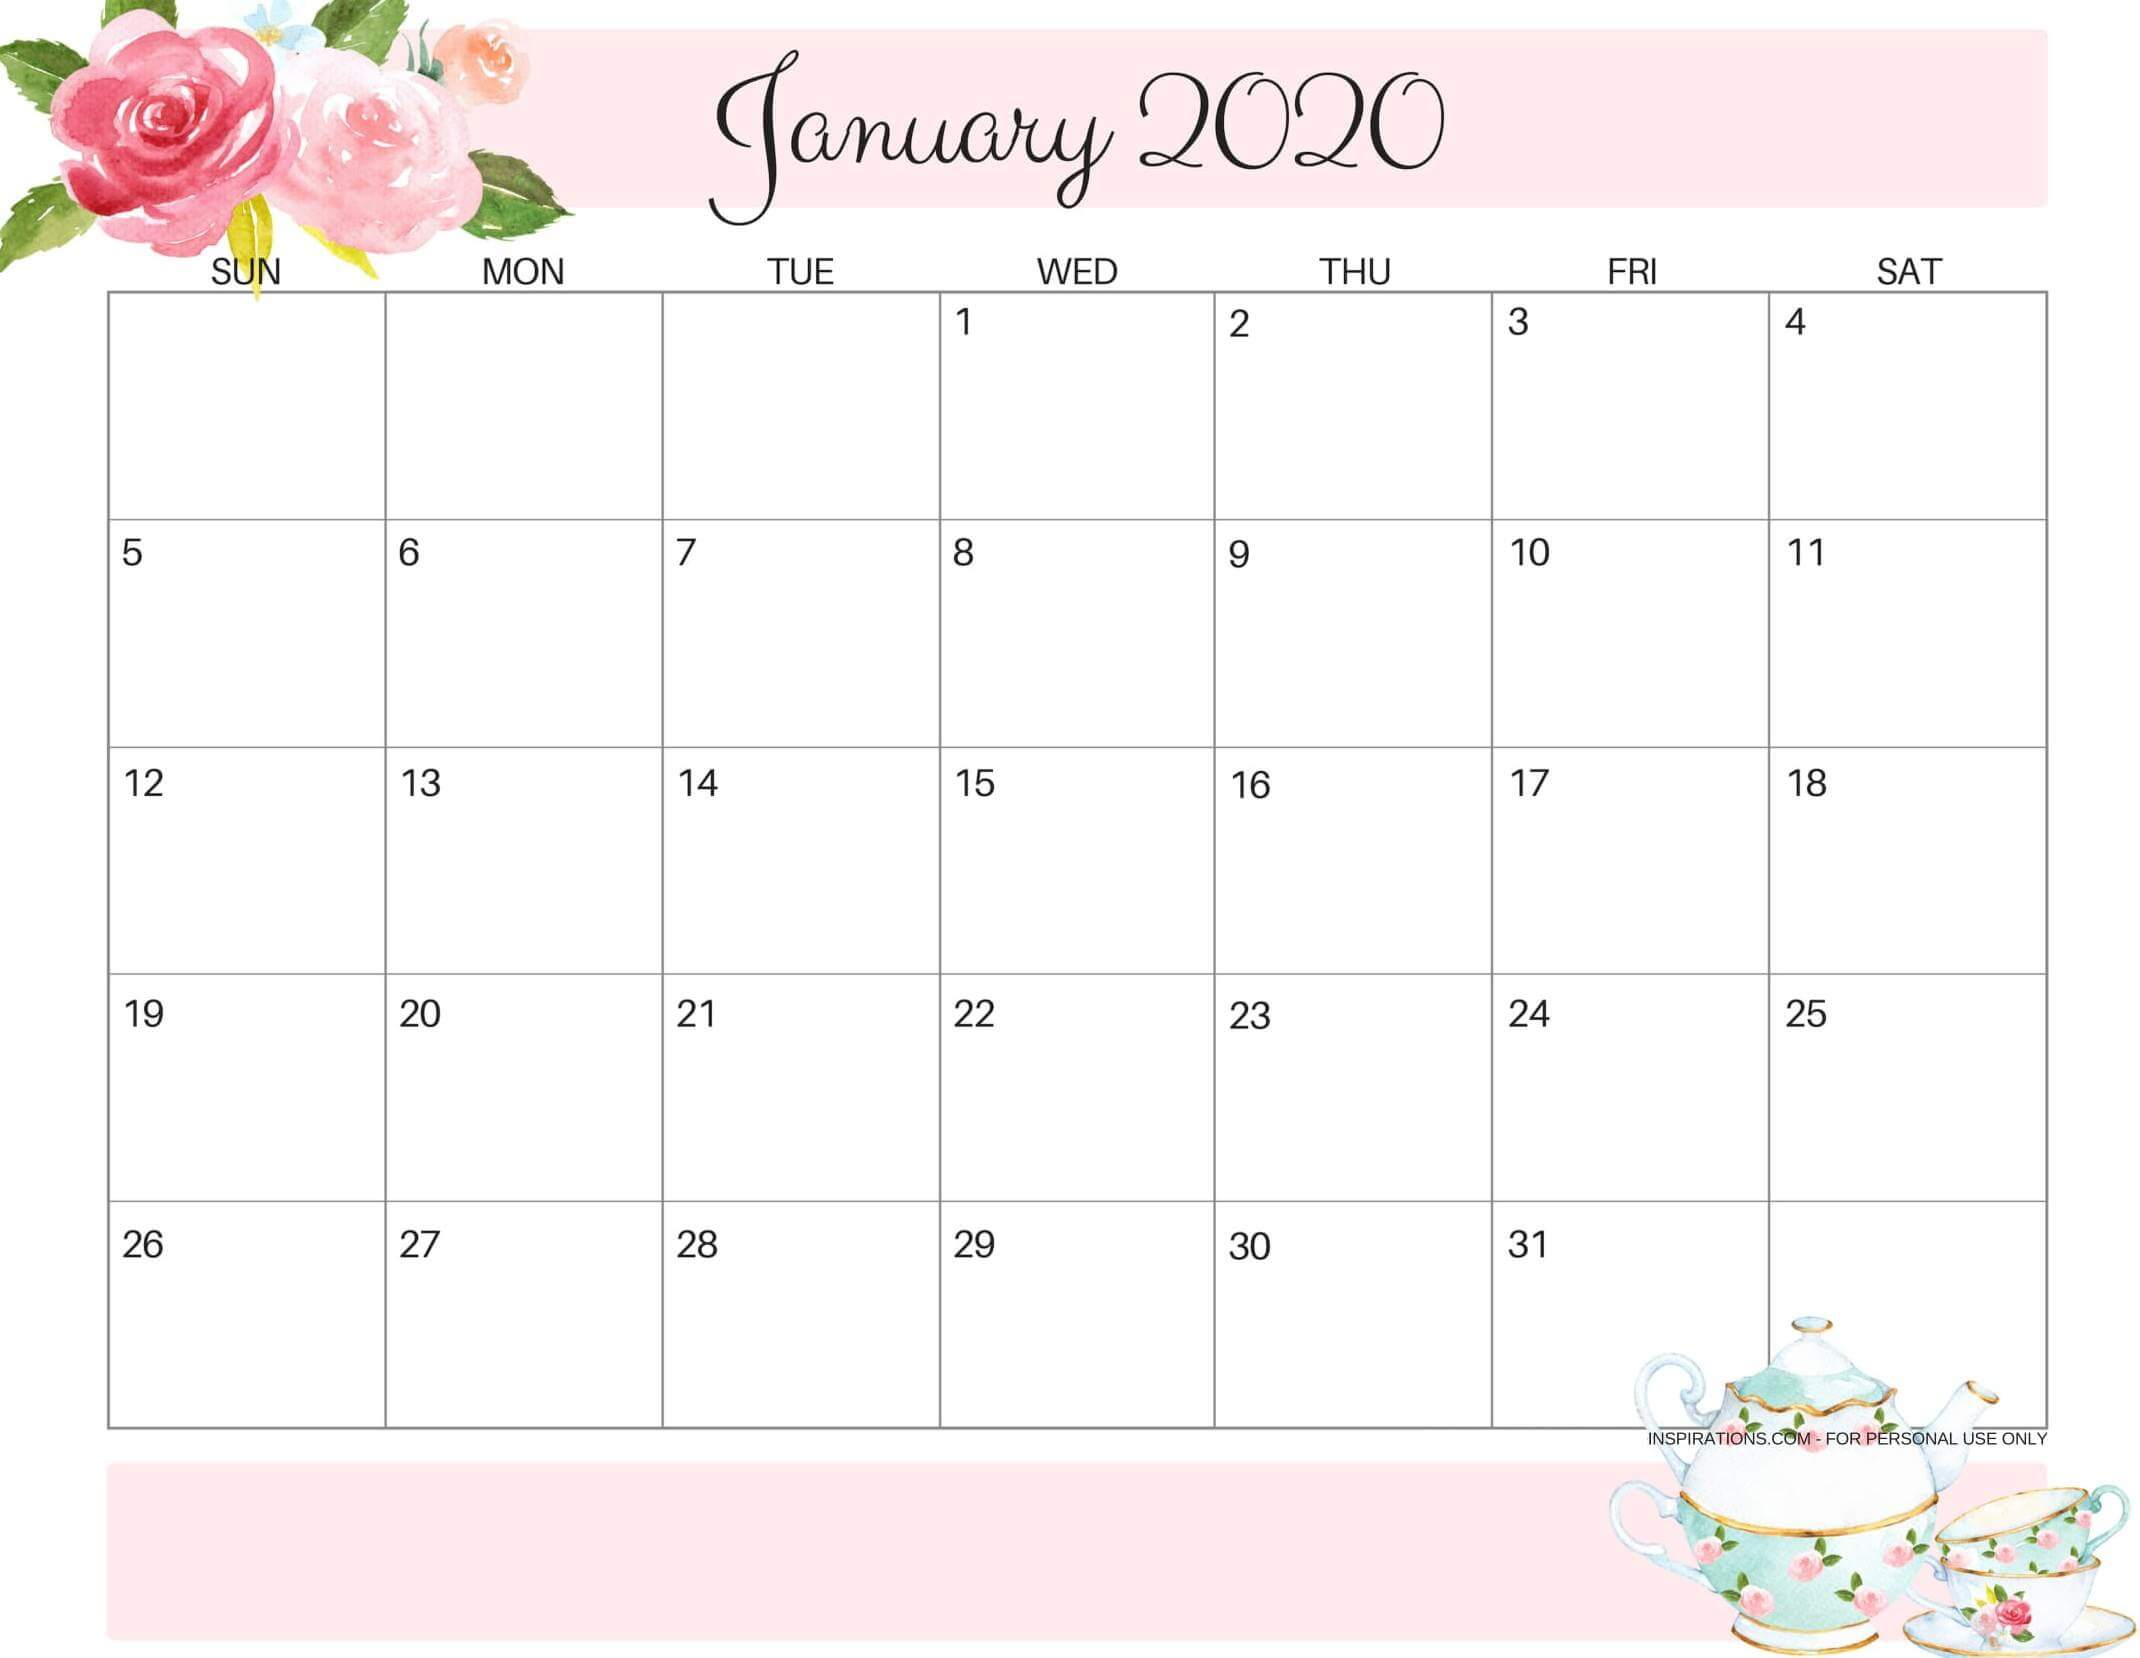 Cute January 2020 Calendar Design Printable Template - Set